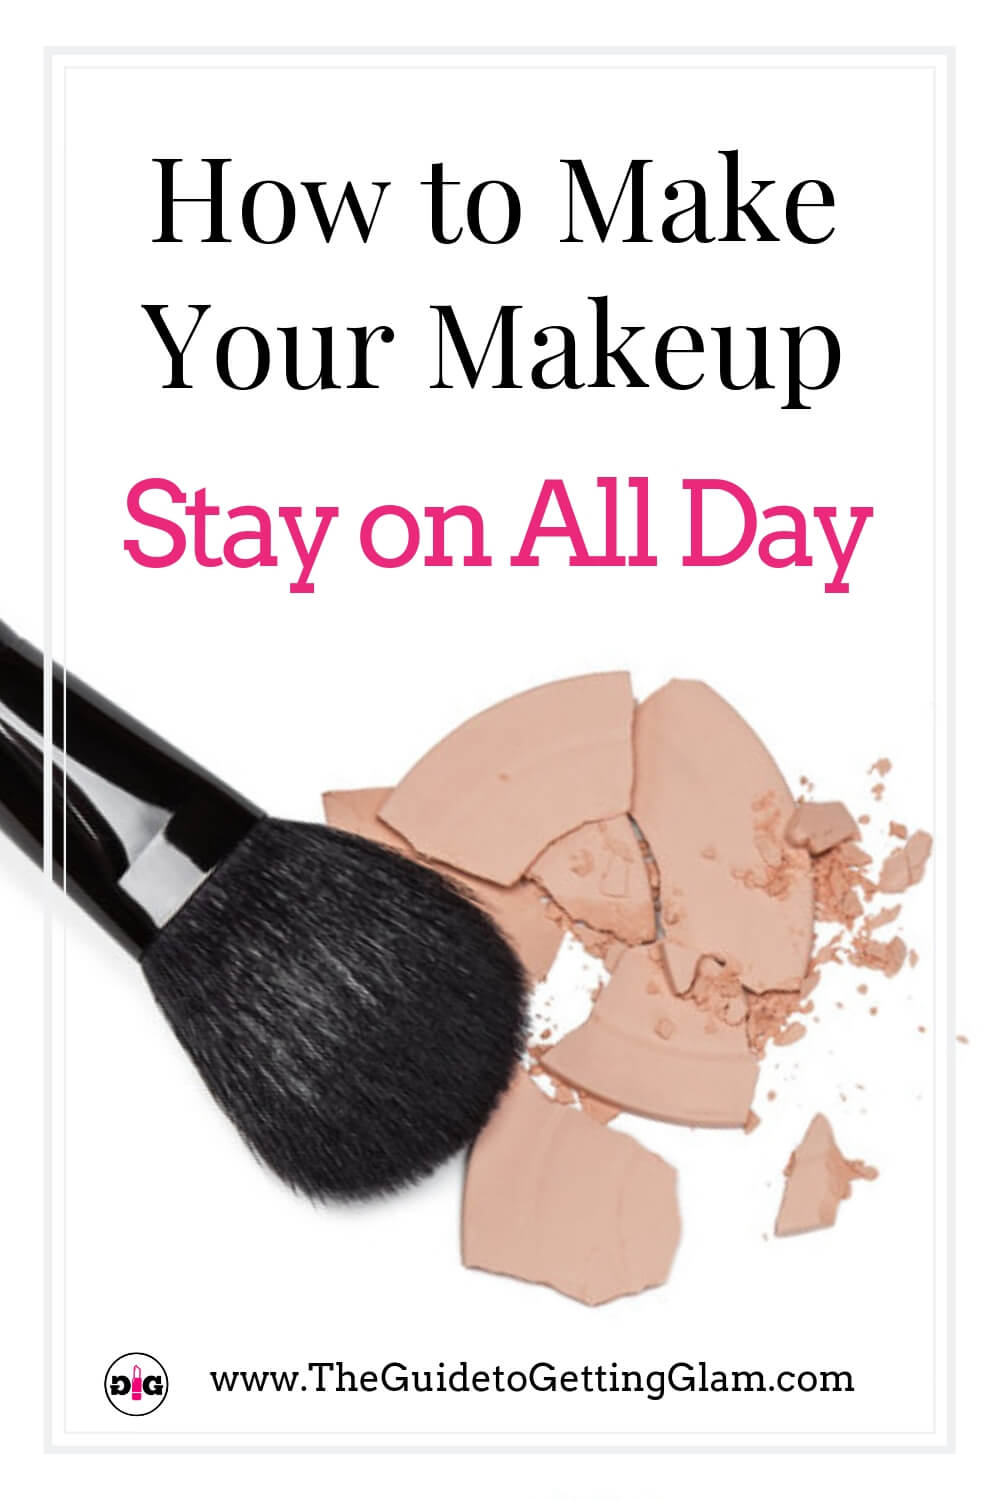 How to Make Your Makeup Stay on All Day. Learn these makeup artist insider tips to help your makeup last longer in this online course that will teach you the secrets to longwearing makeup